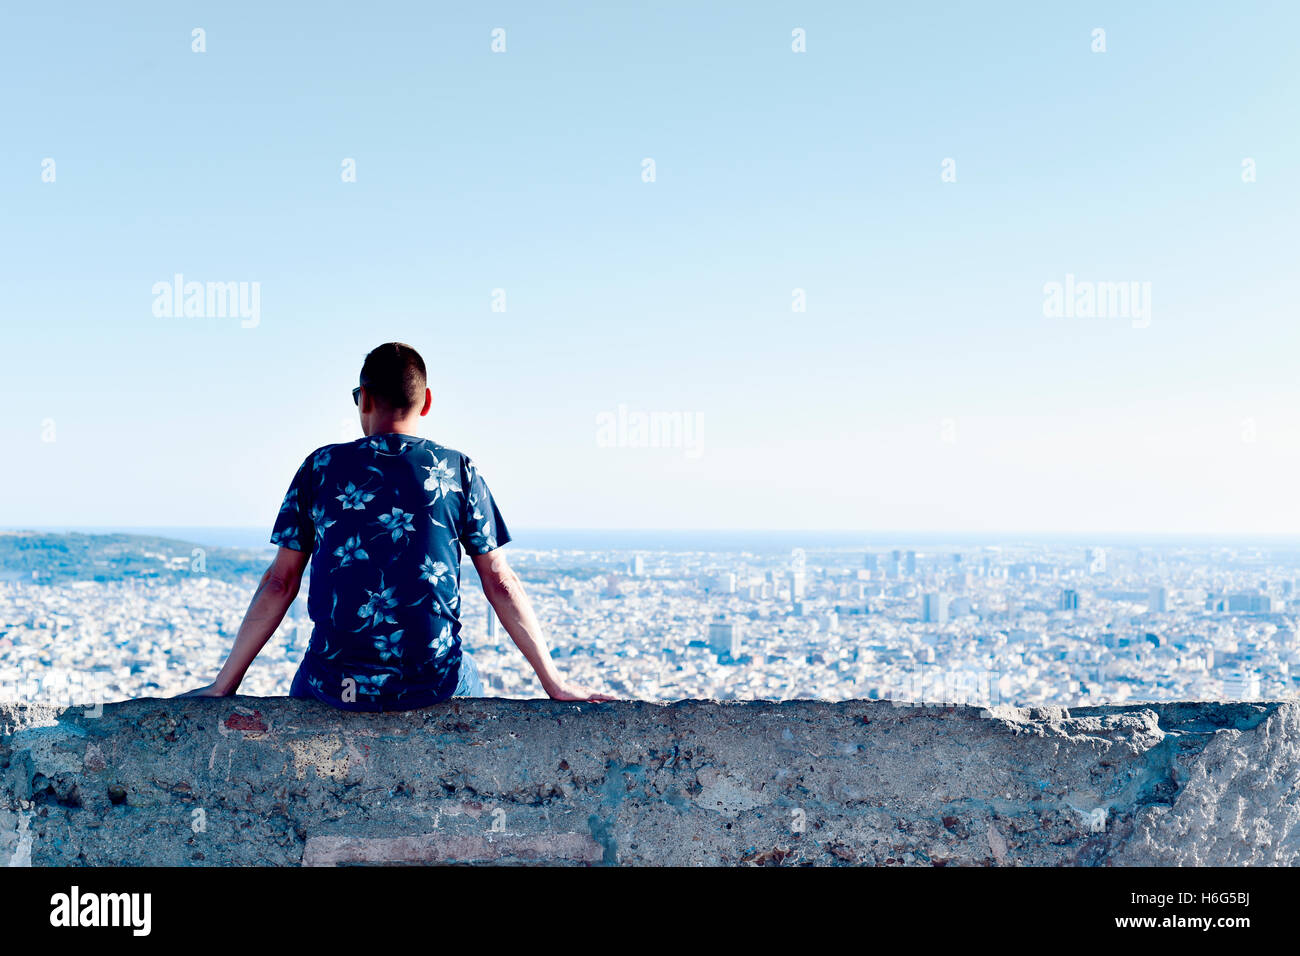 a young caucasian man, seen from behind, sitting at the top of a hill observing the city below him - Stock Image